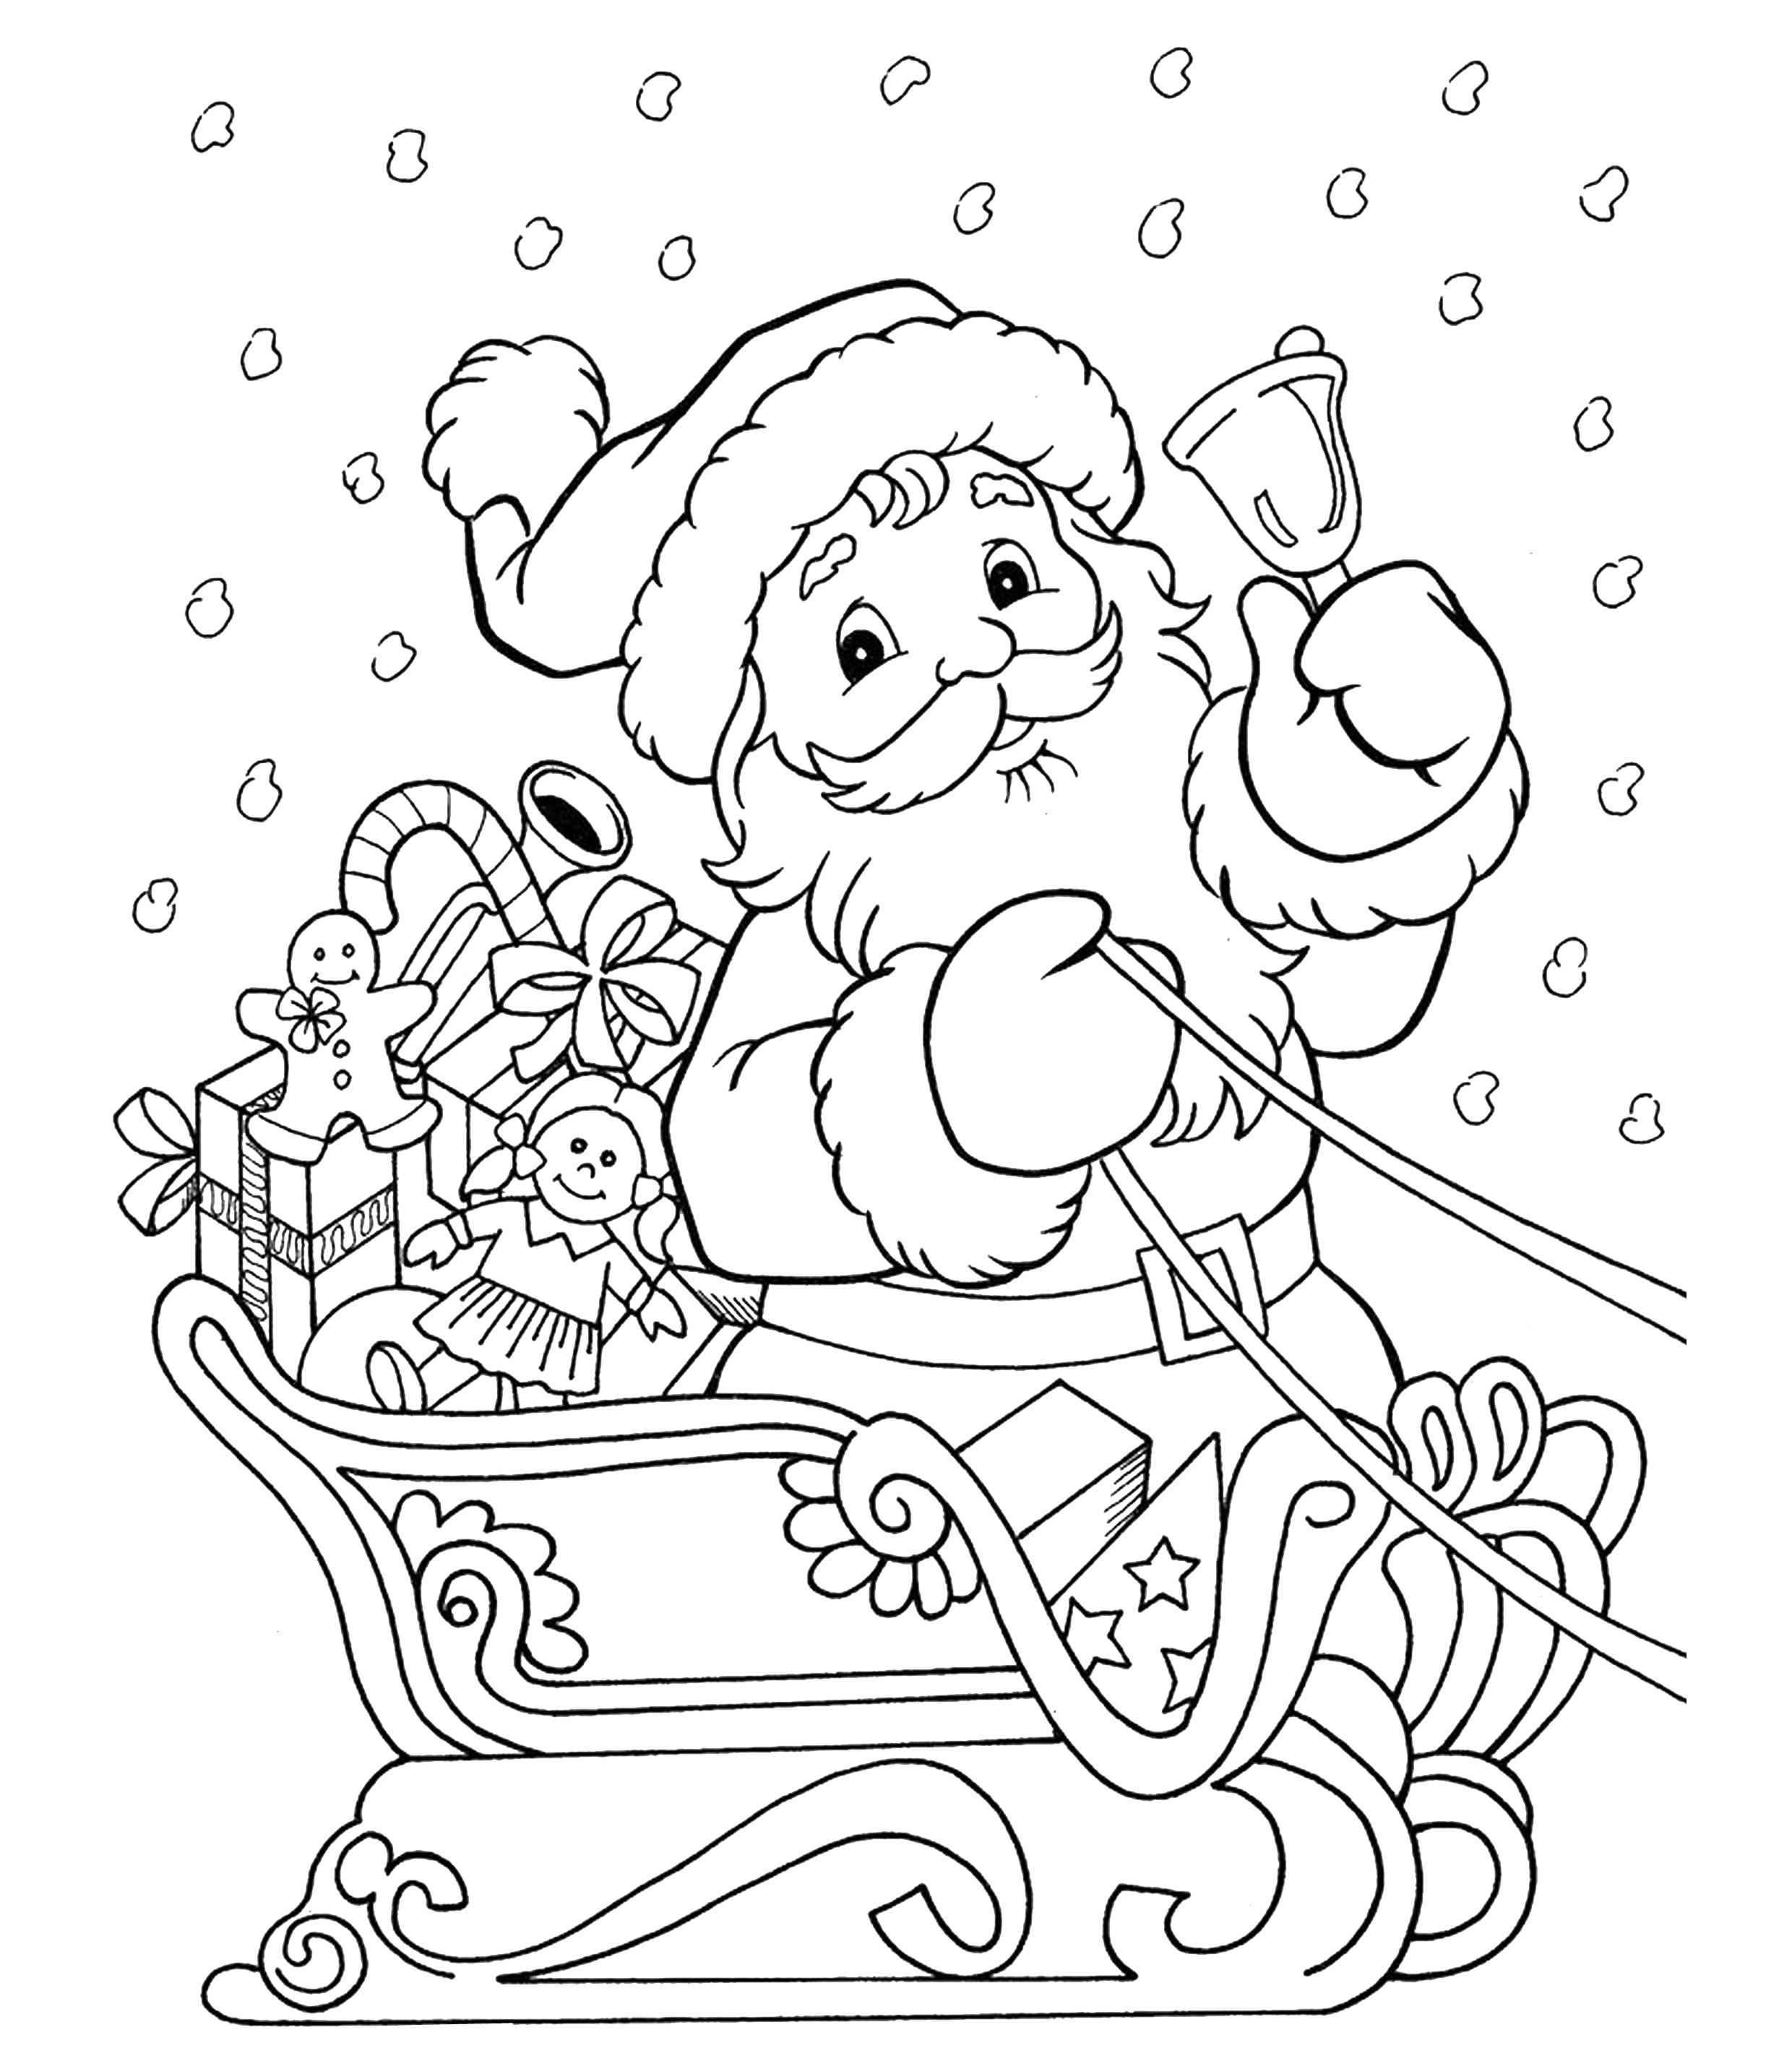 2020 Colouring Competition